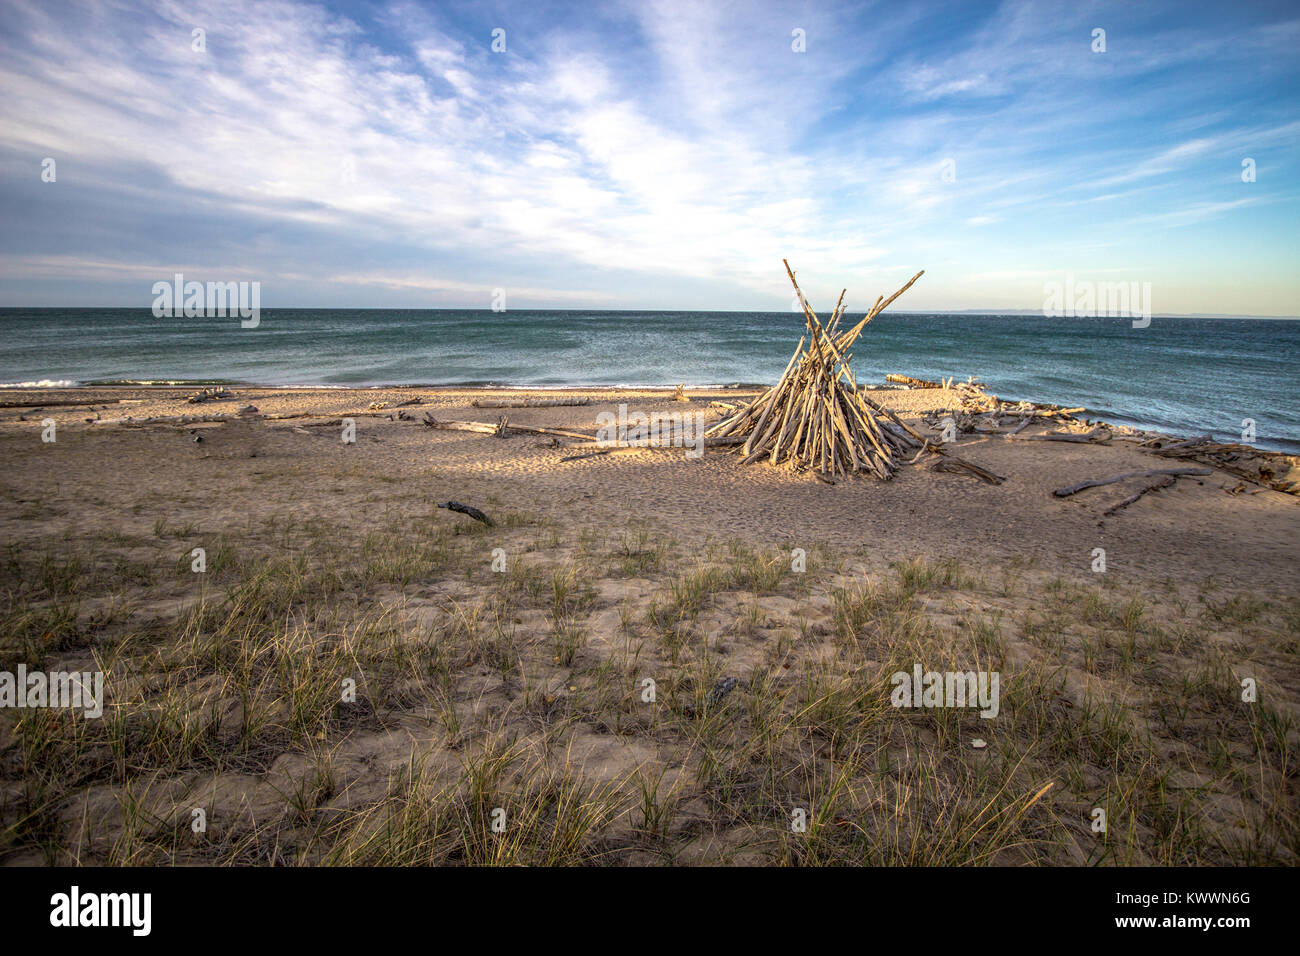 Lake Superior Beach Background Wild And Scenic Shore Of With Rustic Hut Whitefish Point Upper Peninsula Michigan USA